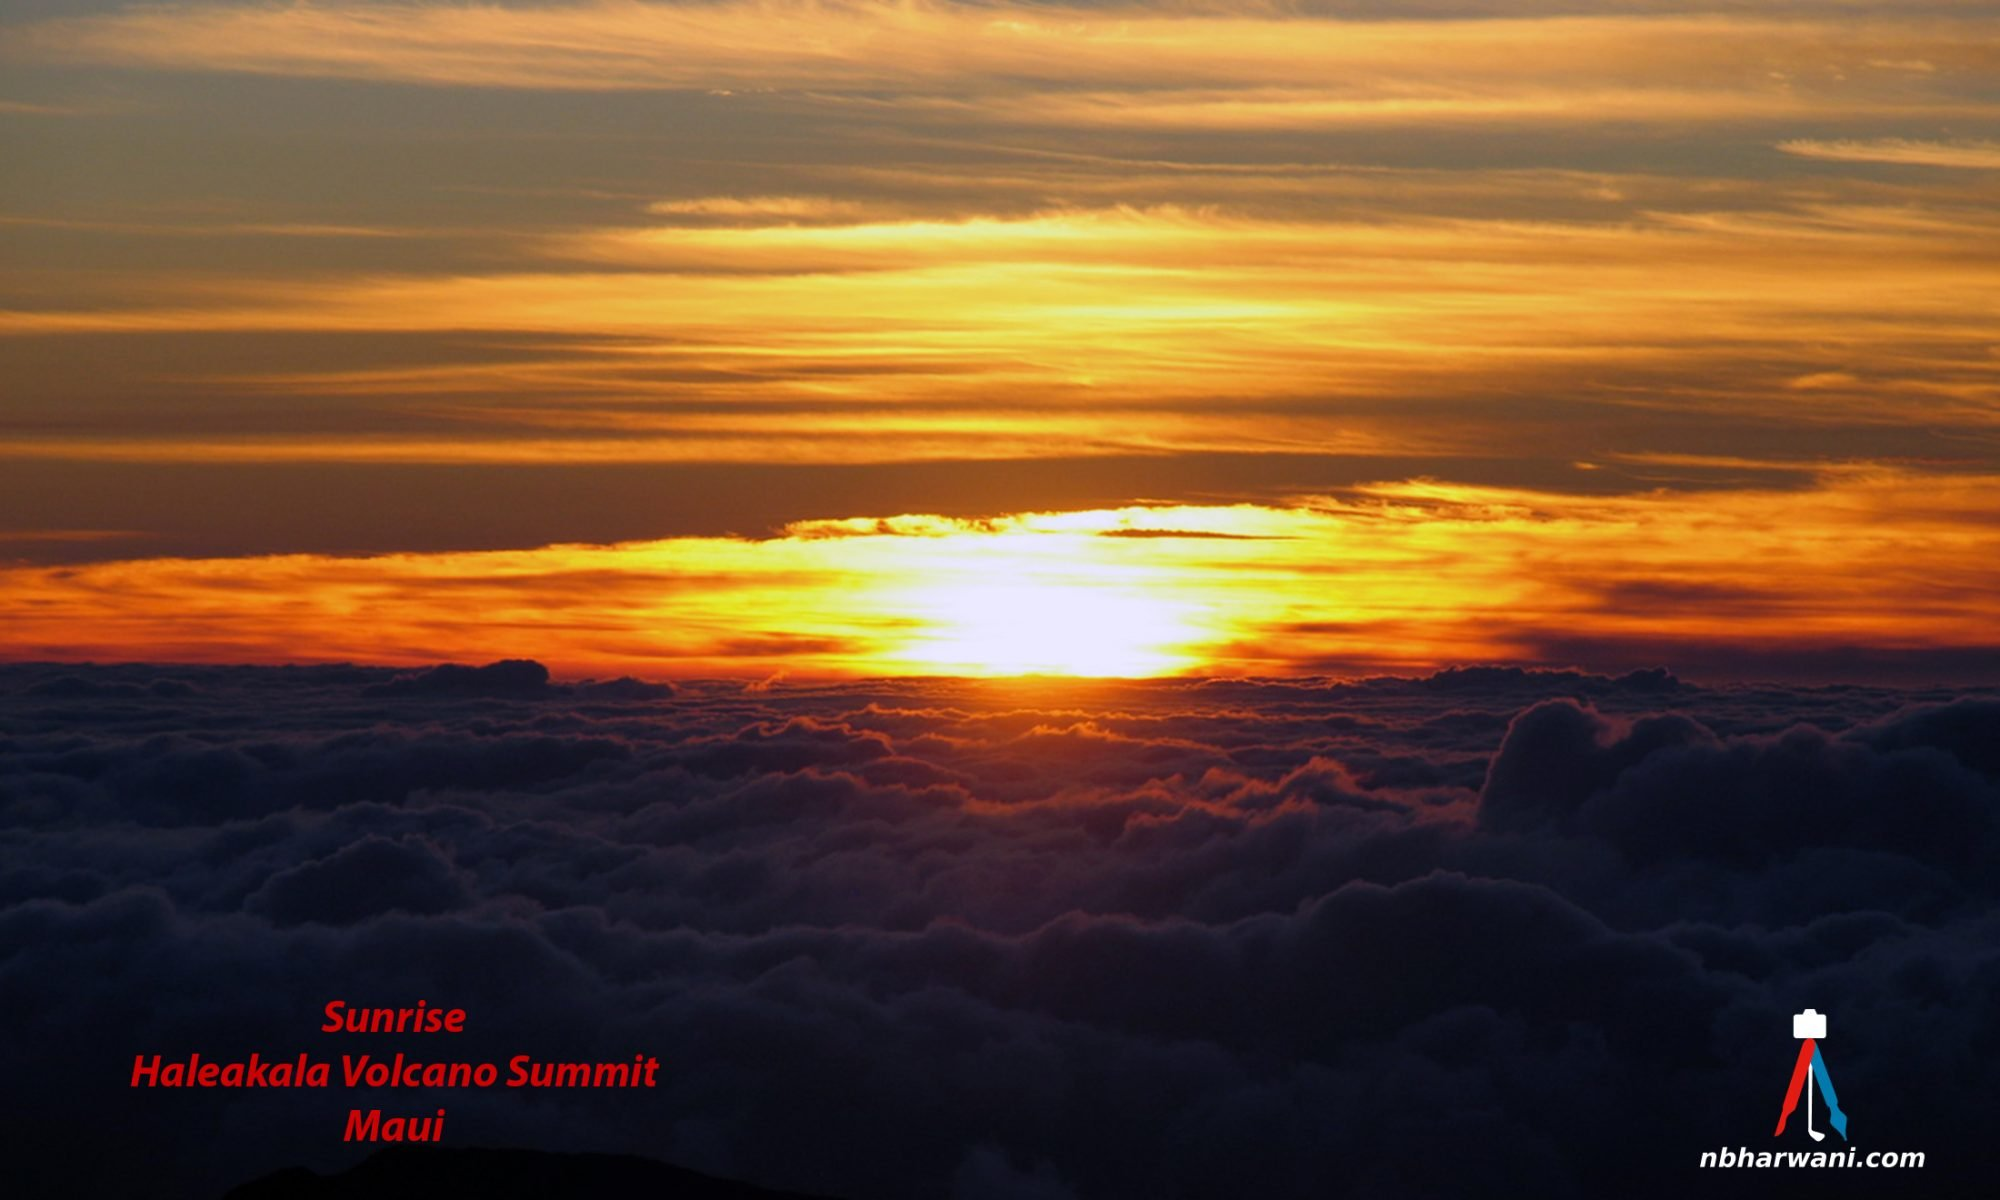 Sunrise at Haleakala Volcano Summit in Maui, Hawaii. (Dr. Noorali Bharwani)